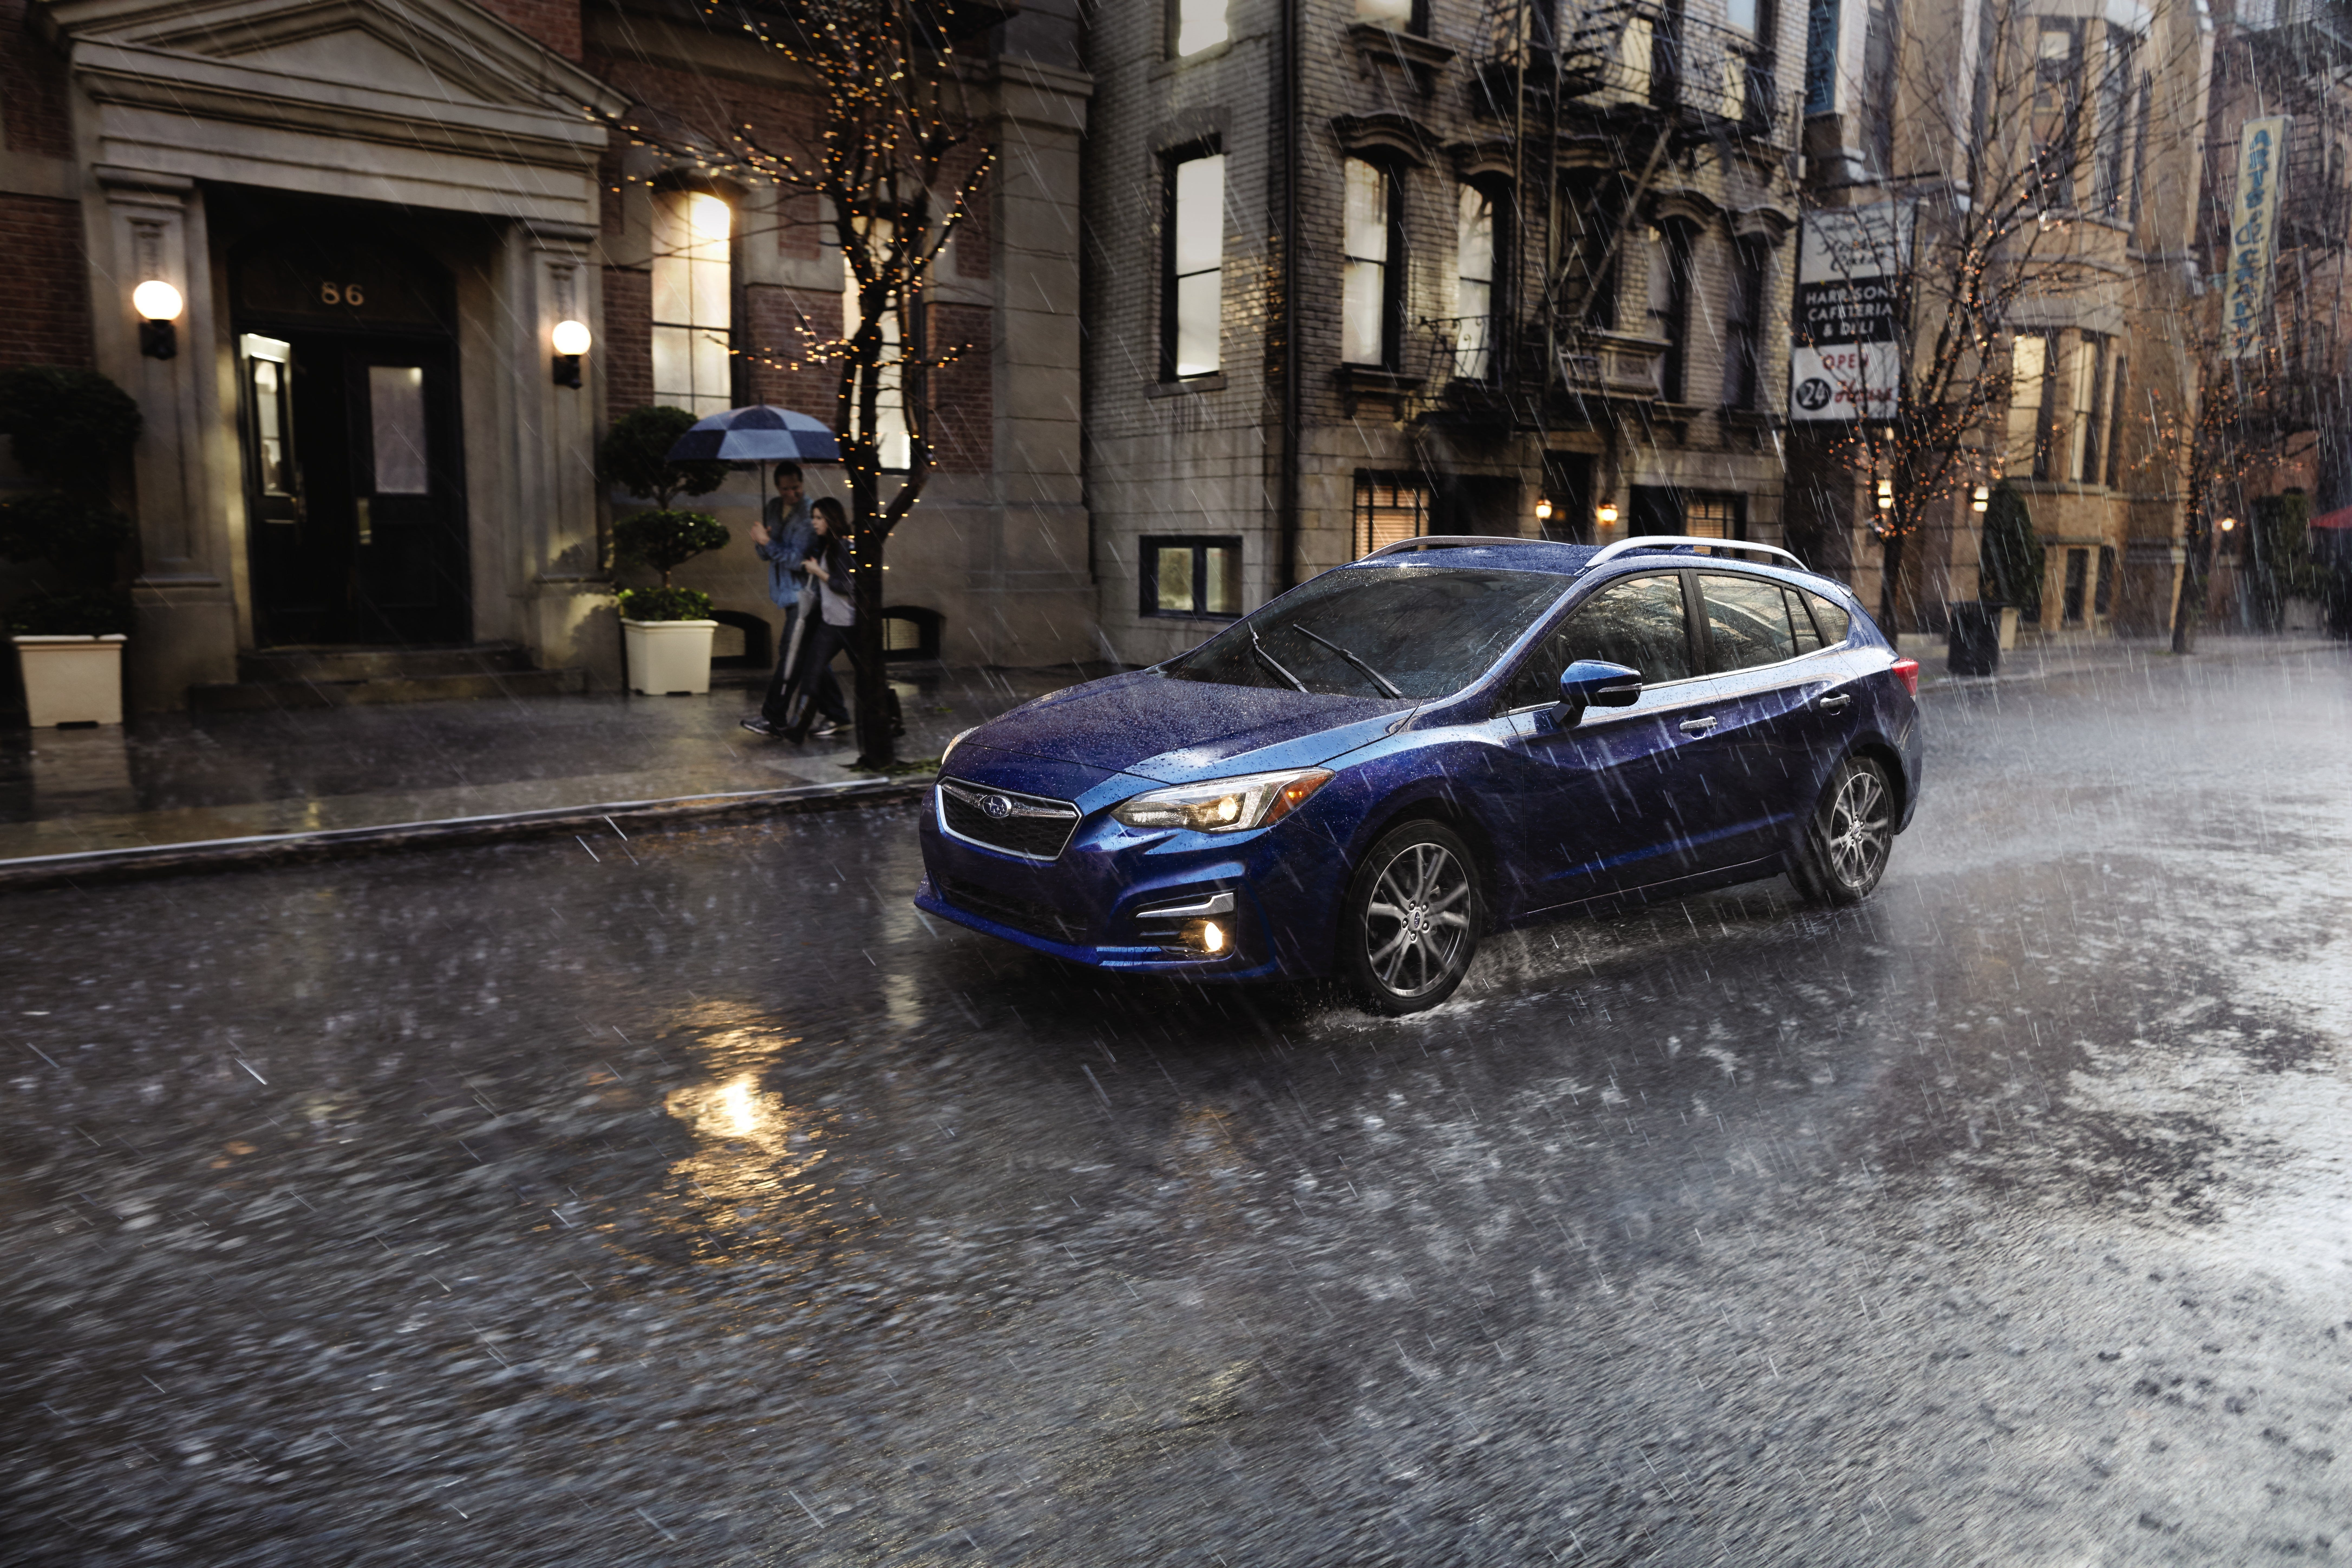 Subaru Legacy: Operation during cold weather